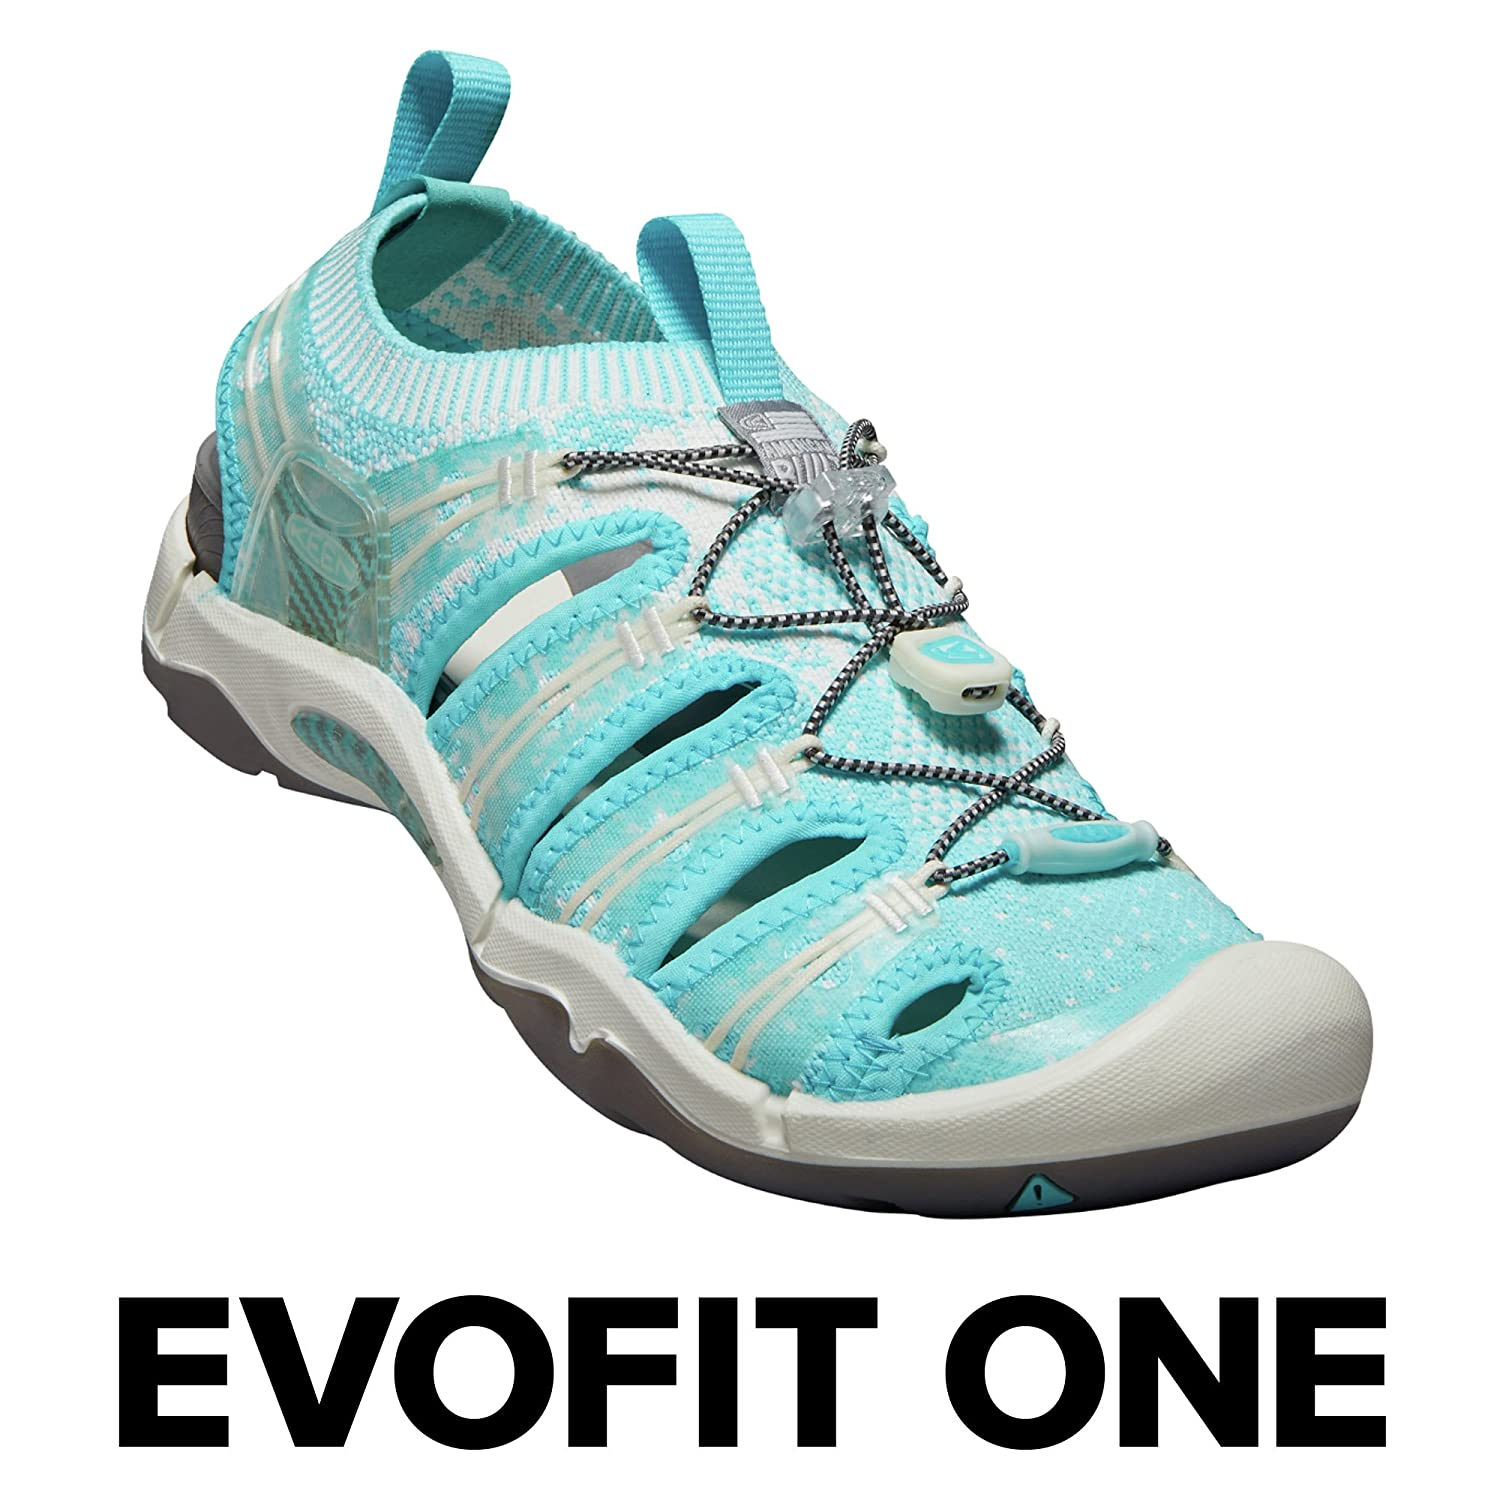 KEEN Women's EVOFIT ONE Water Sandal for Outdoor Adventures B071Y44HVV 10.5 M US|Light Blue